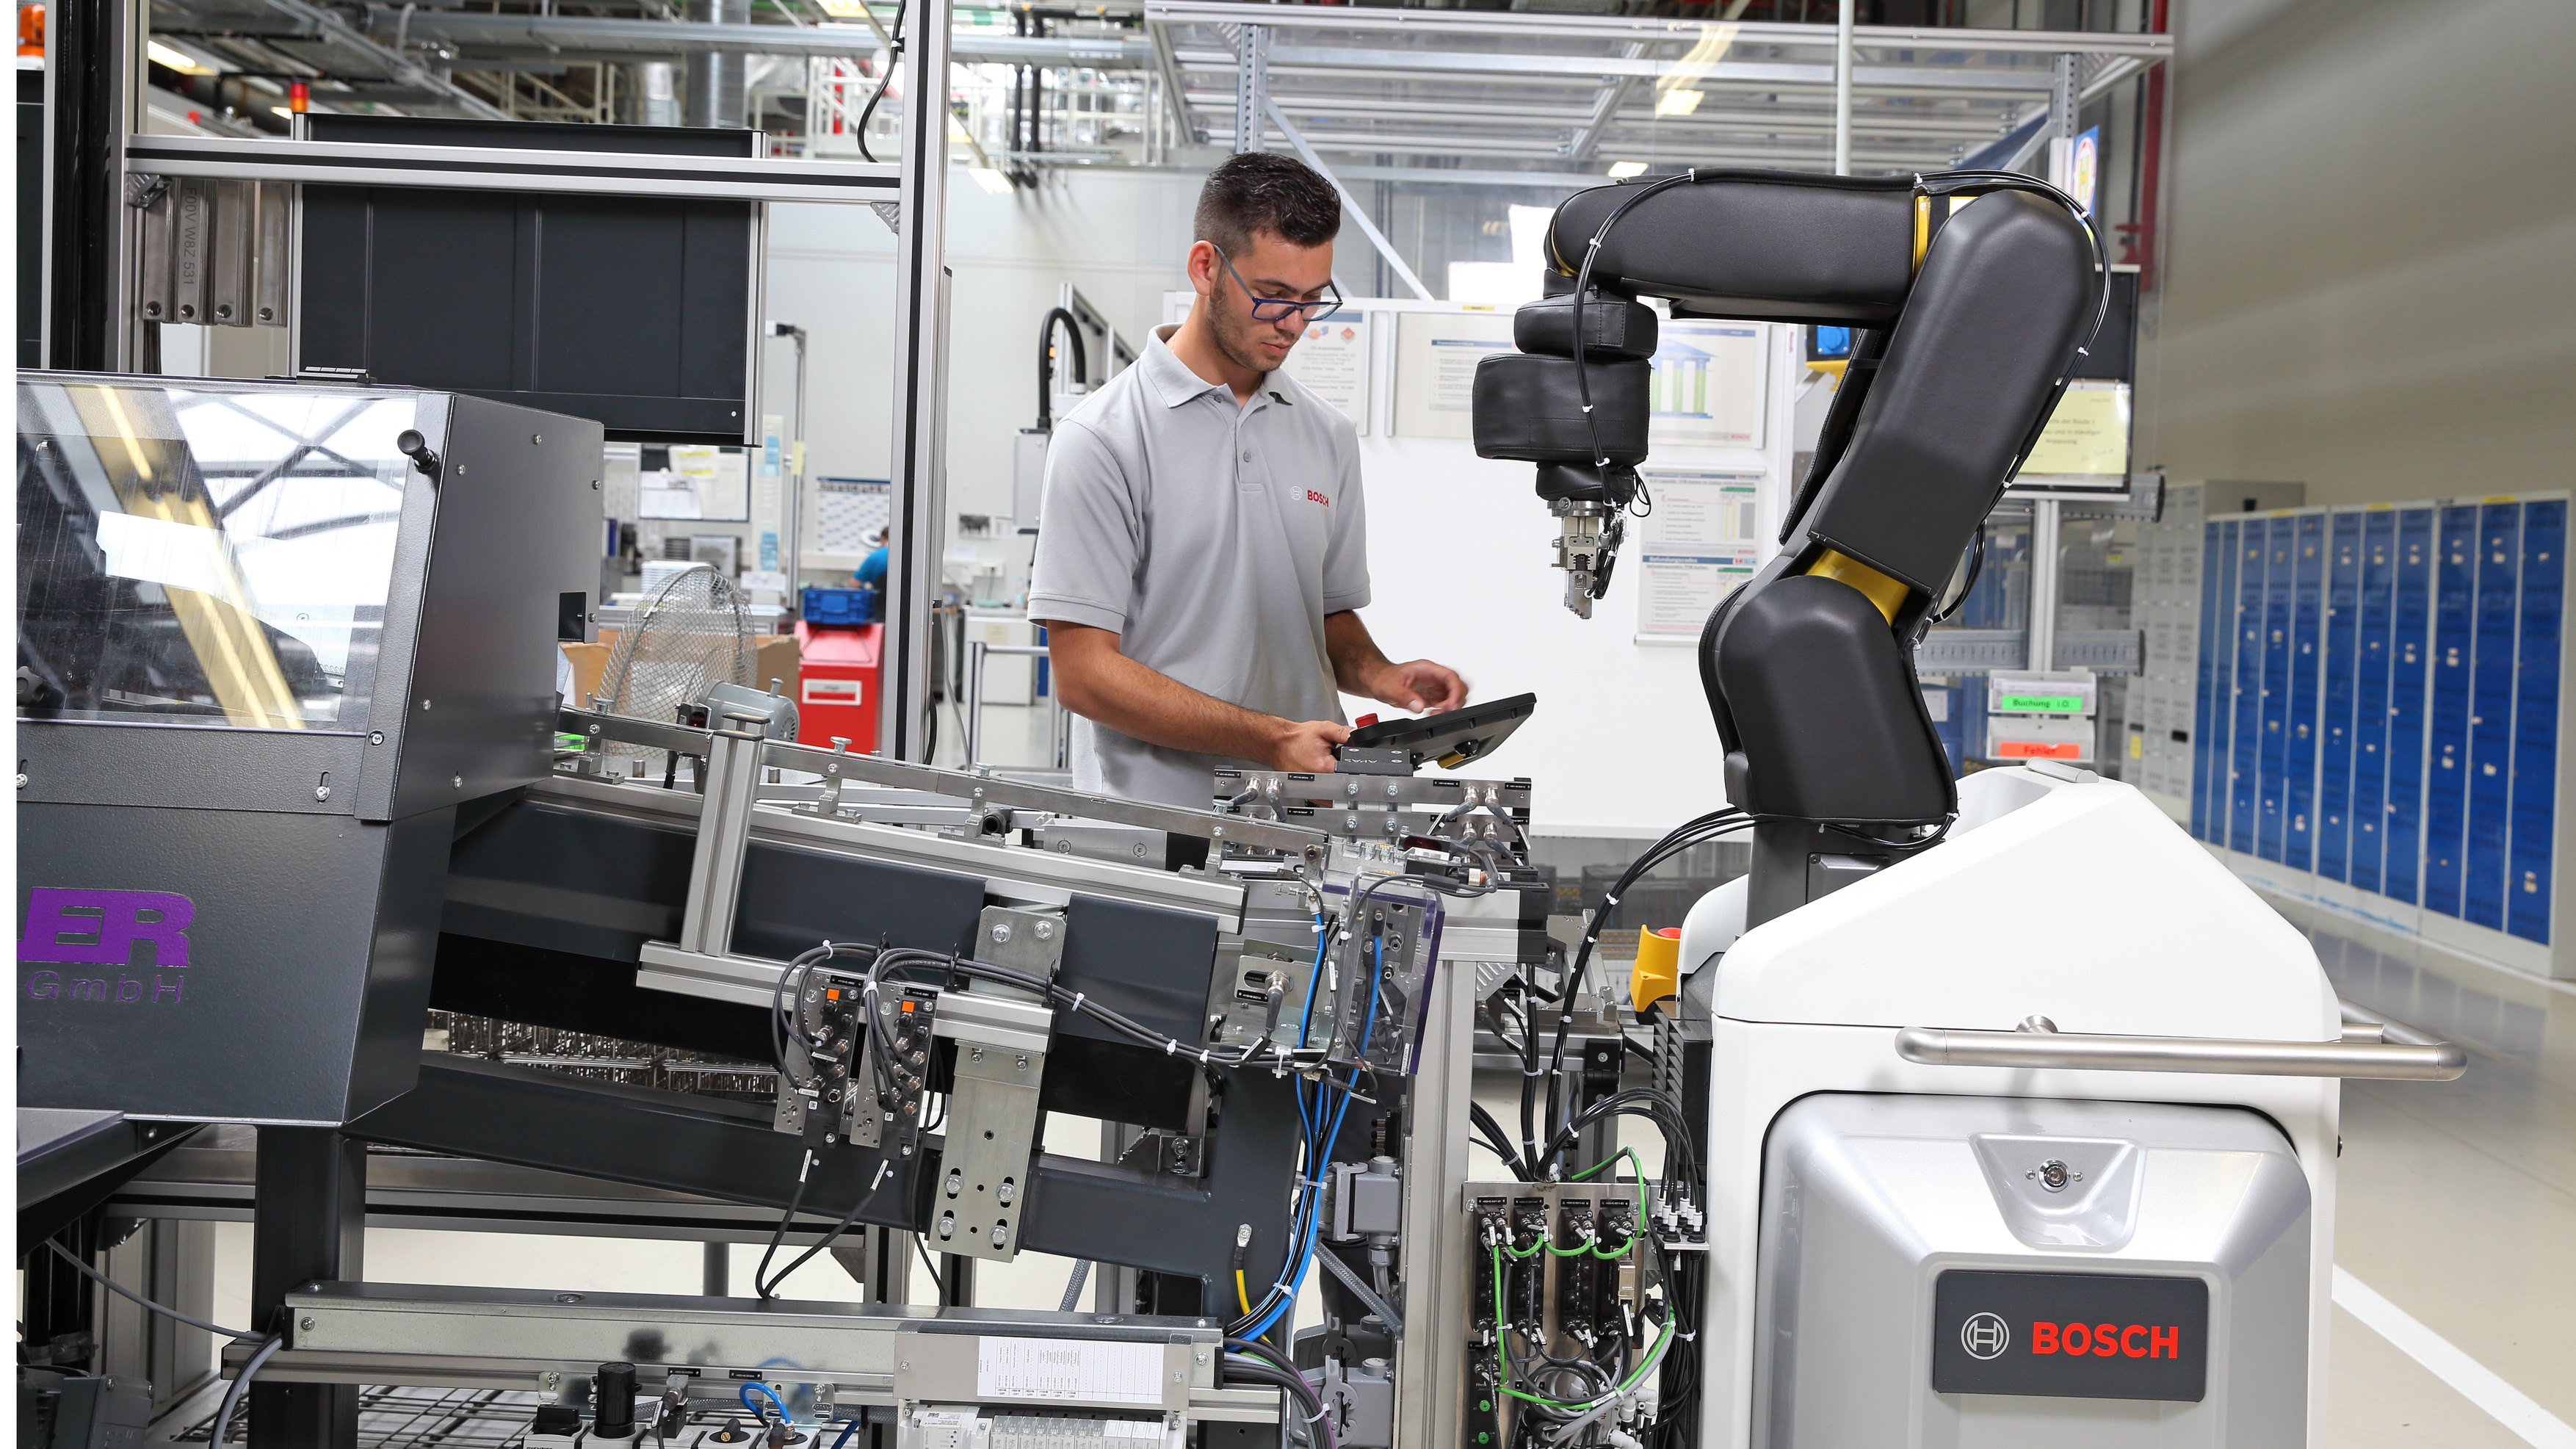 People and machines work hand in hand at Bosch